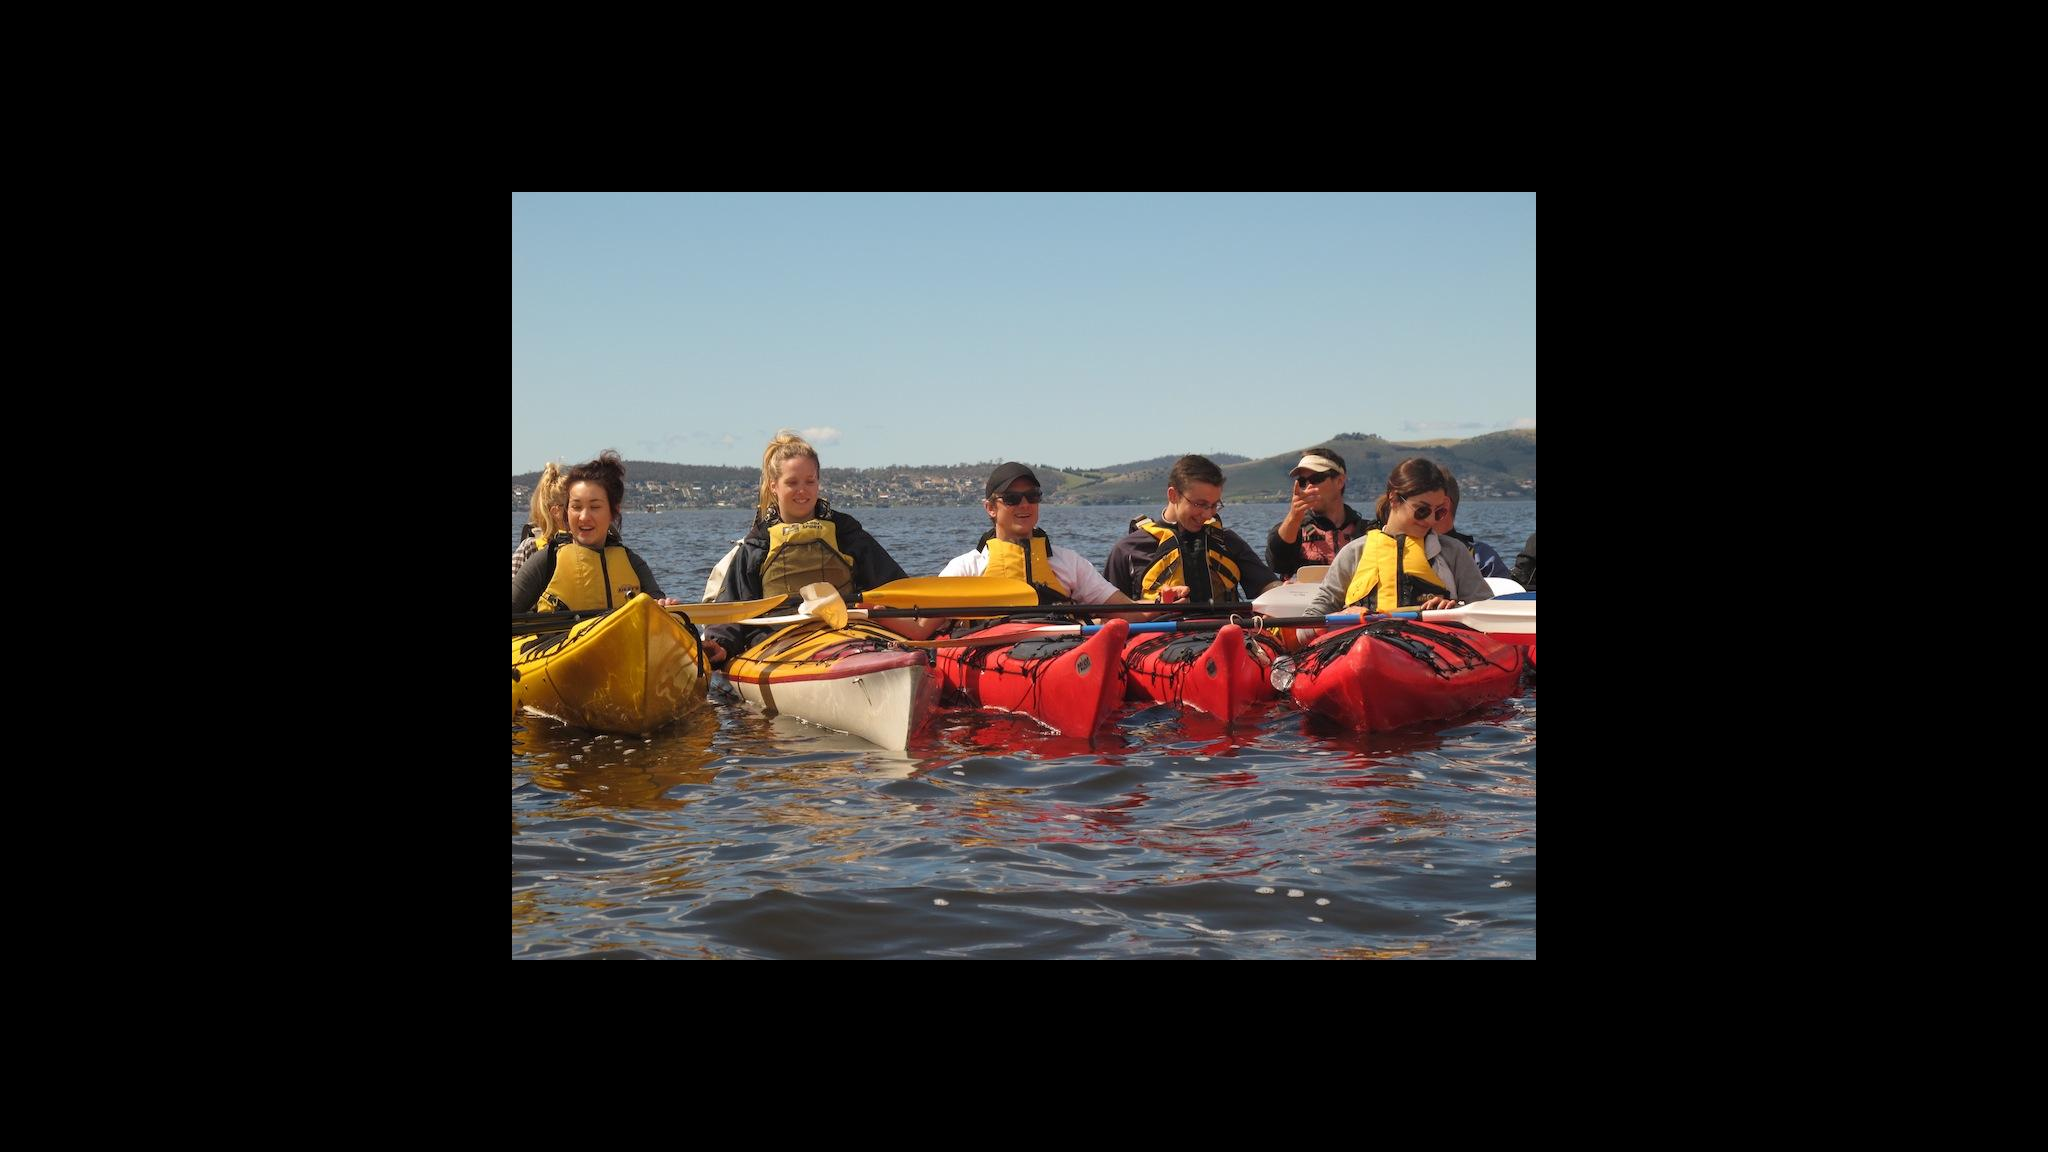 Roaring 40ºs Kayaking - Group adventure activity kayaking - Hobart, Tasmania